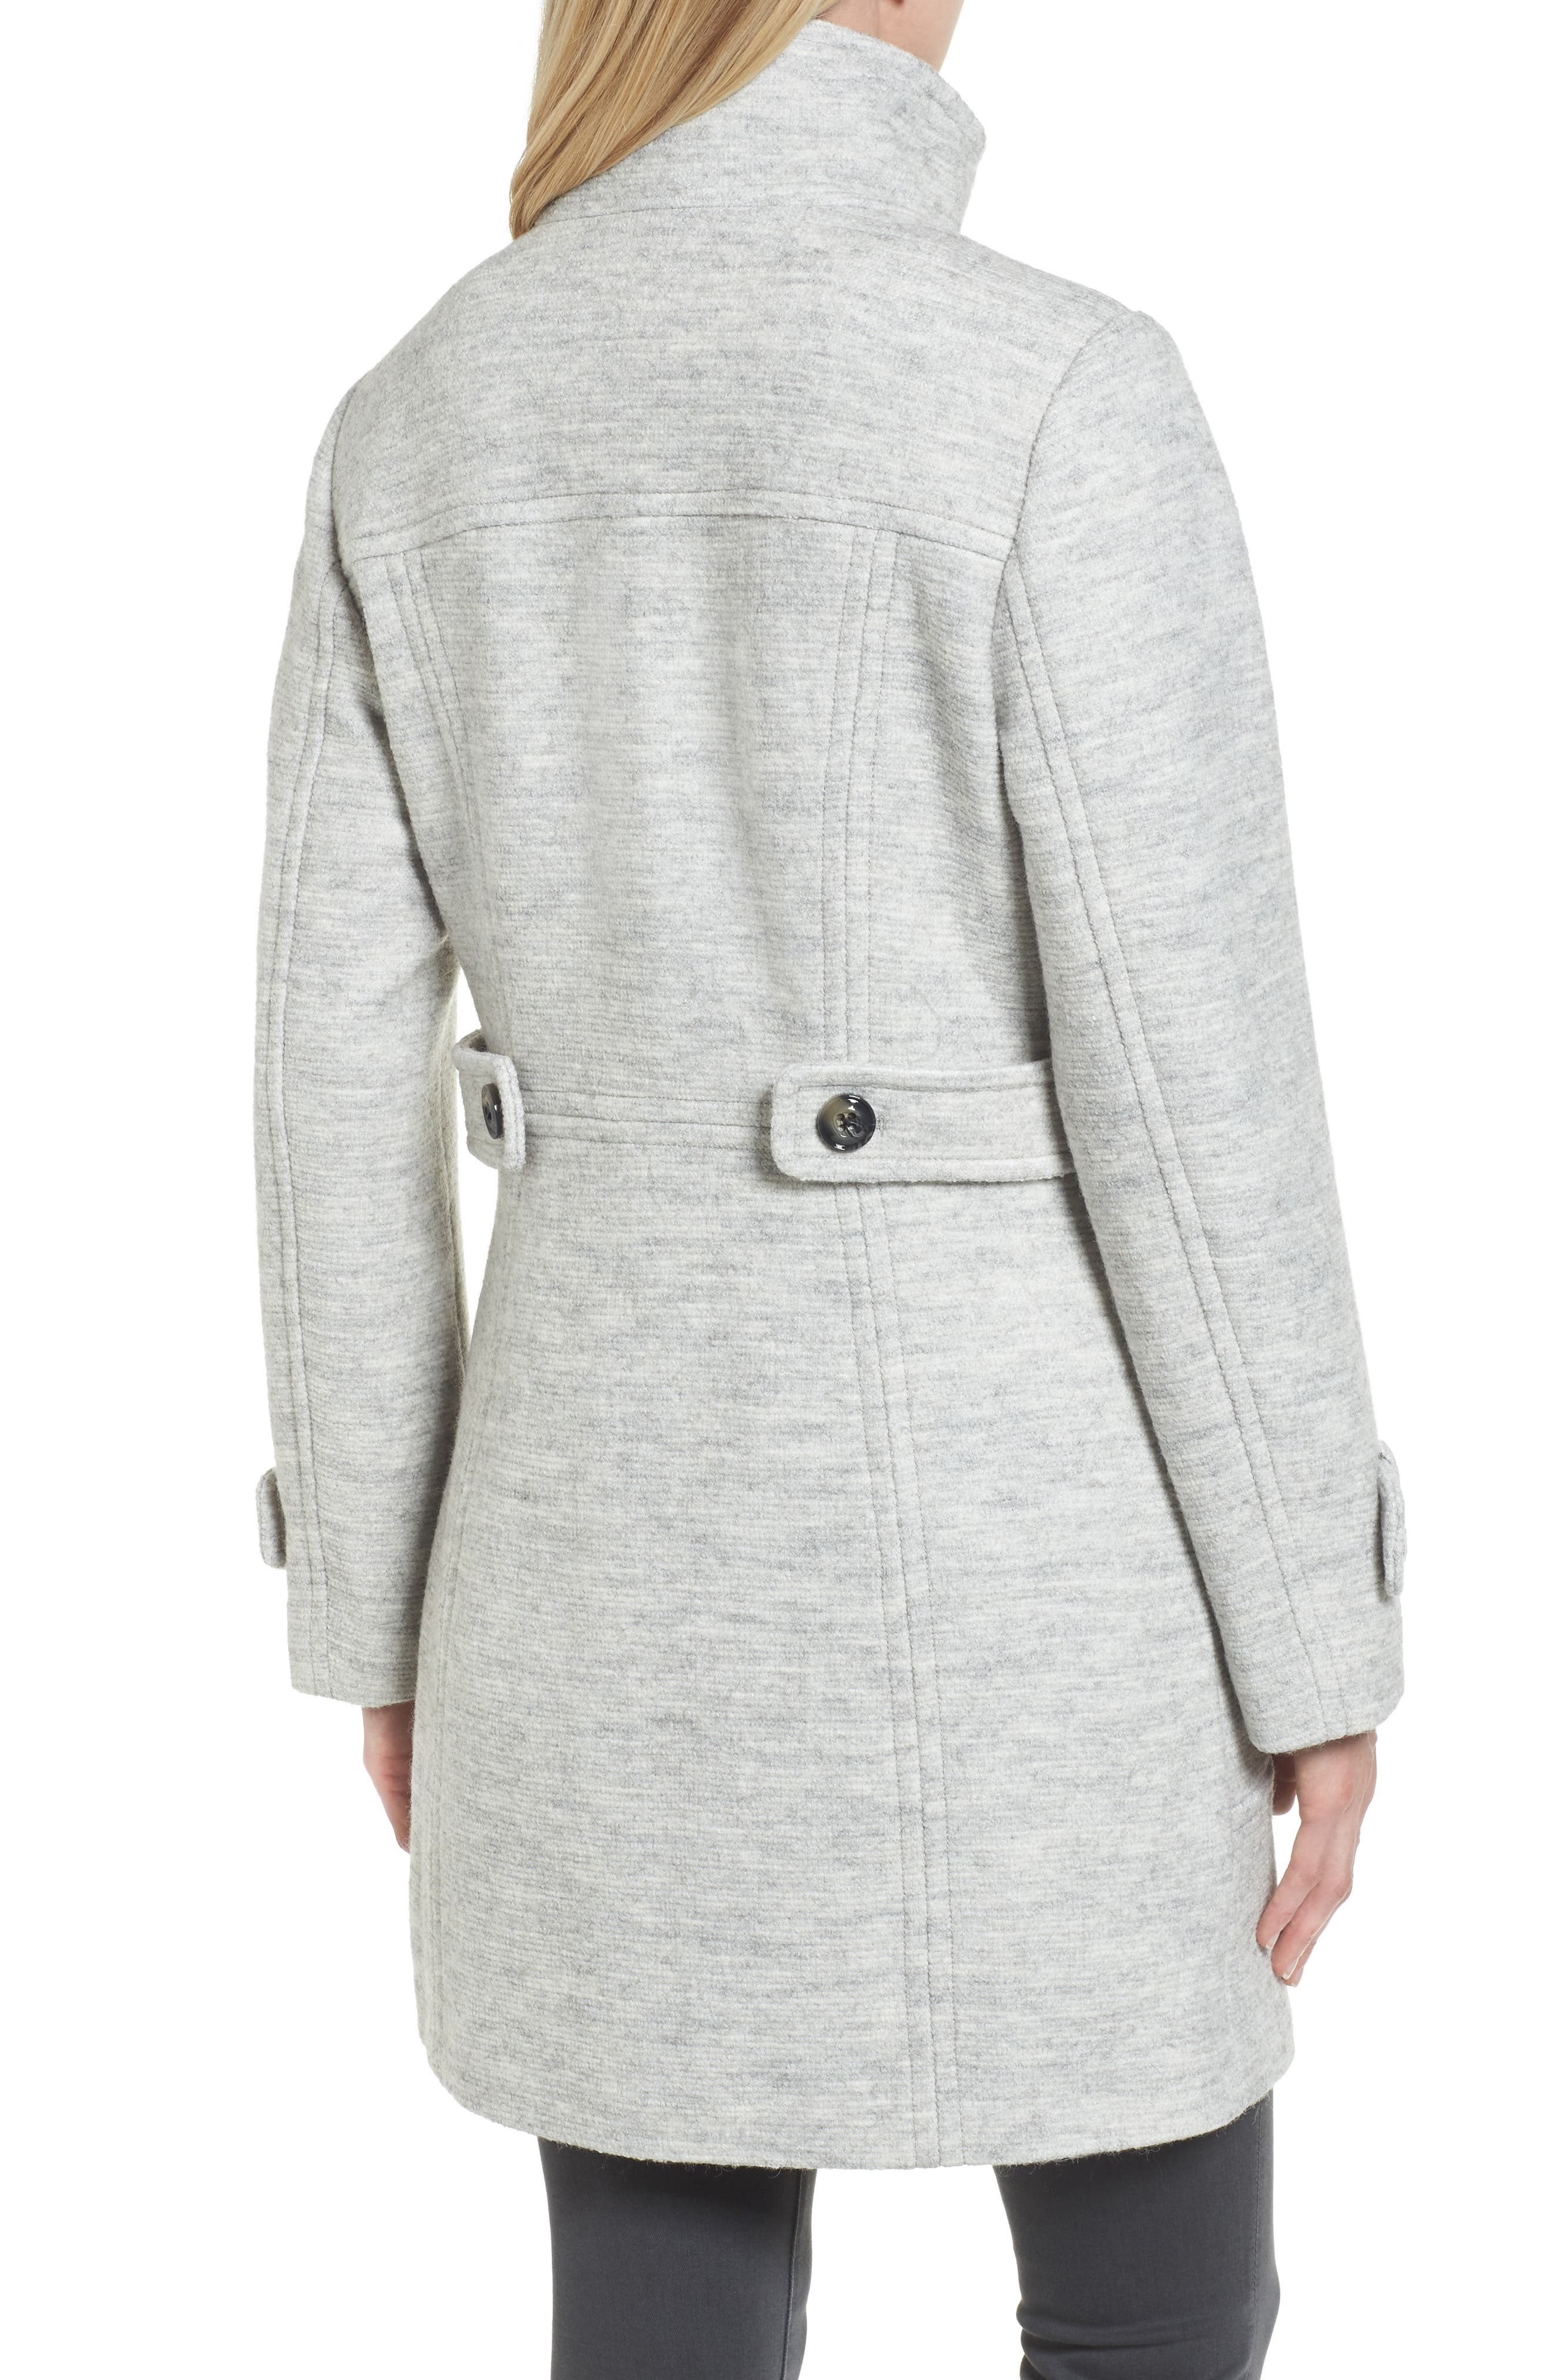 Stand Collar Coat,                             Alternate thumbnail 2, color,                             Pale Grey